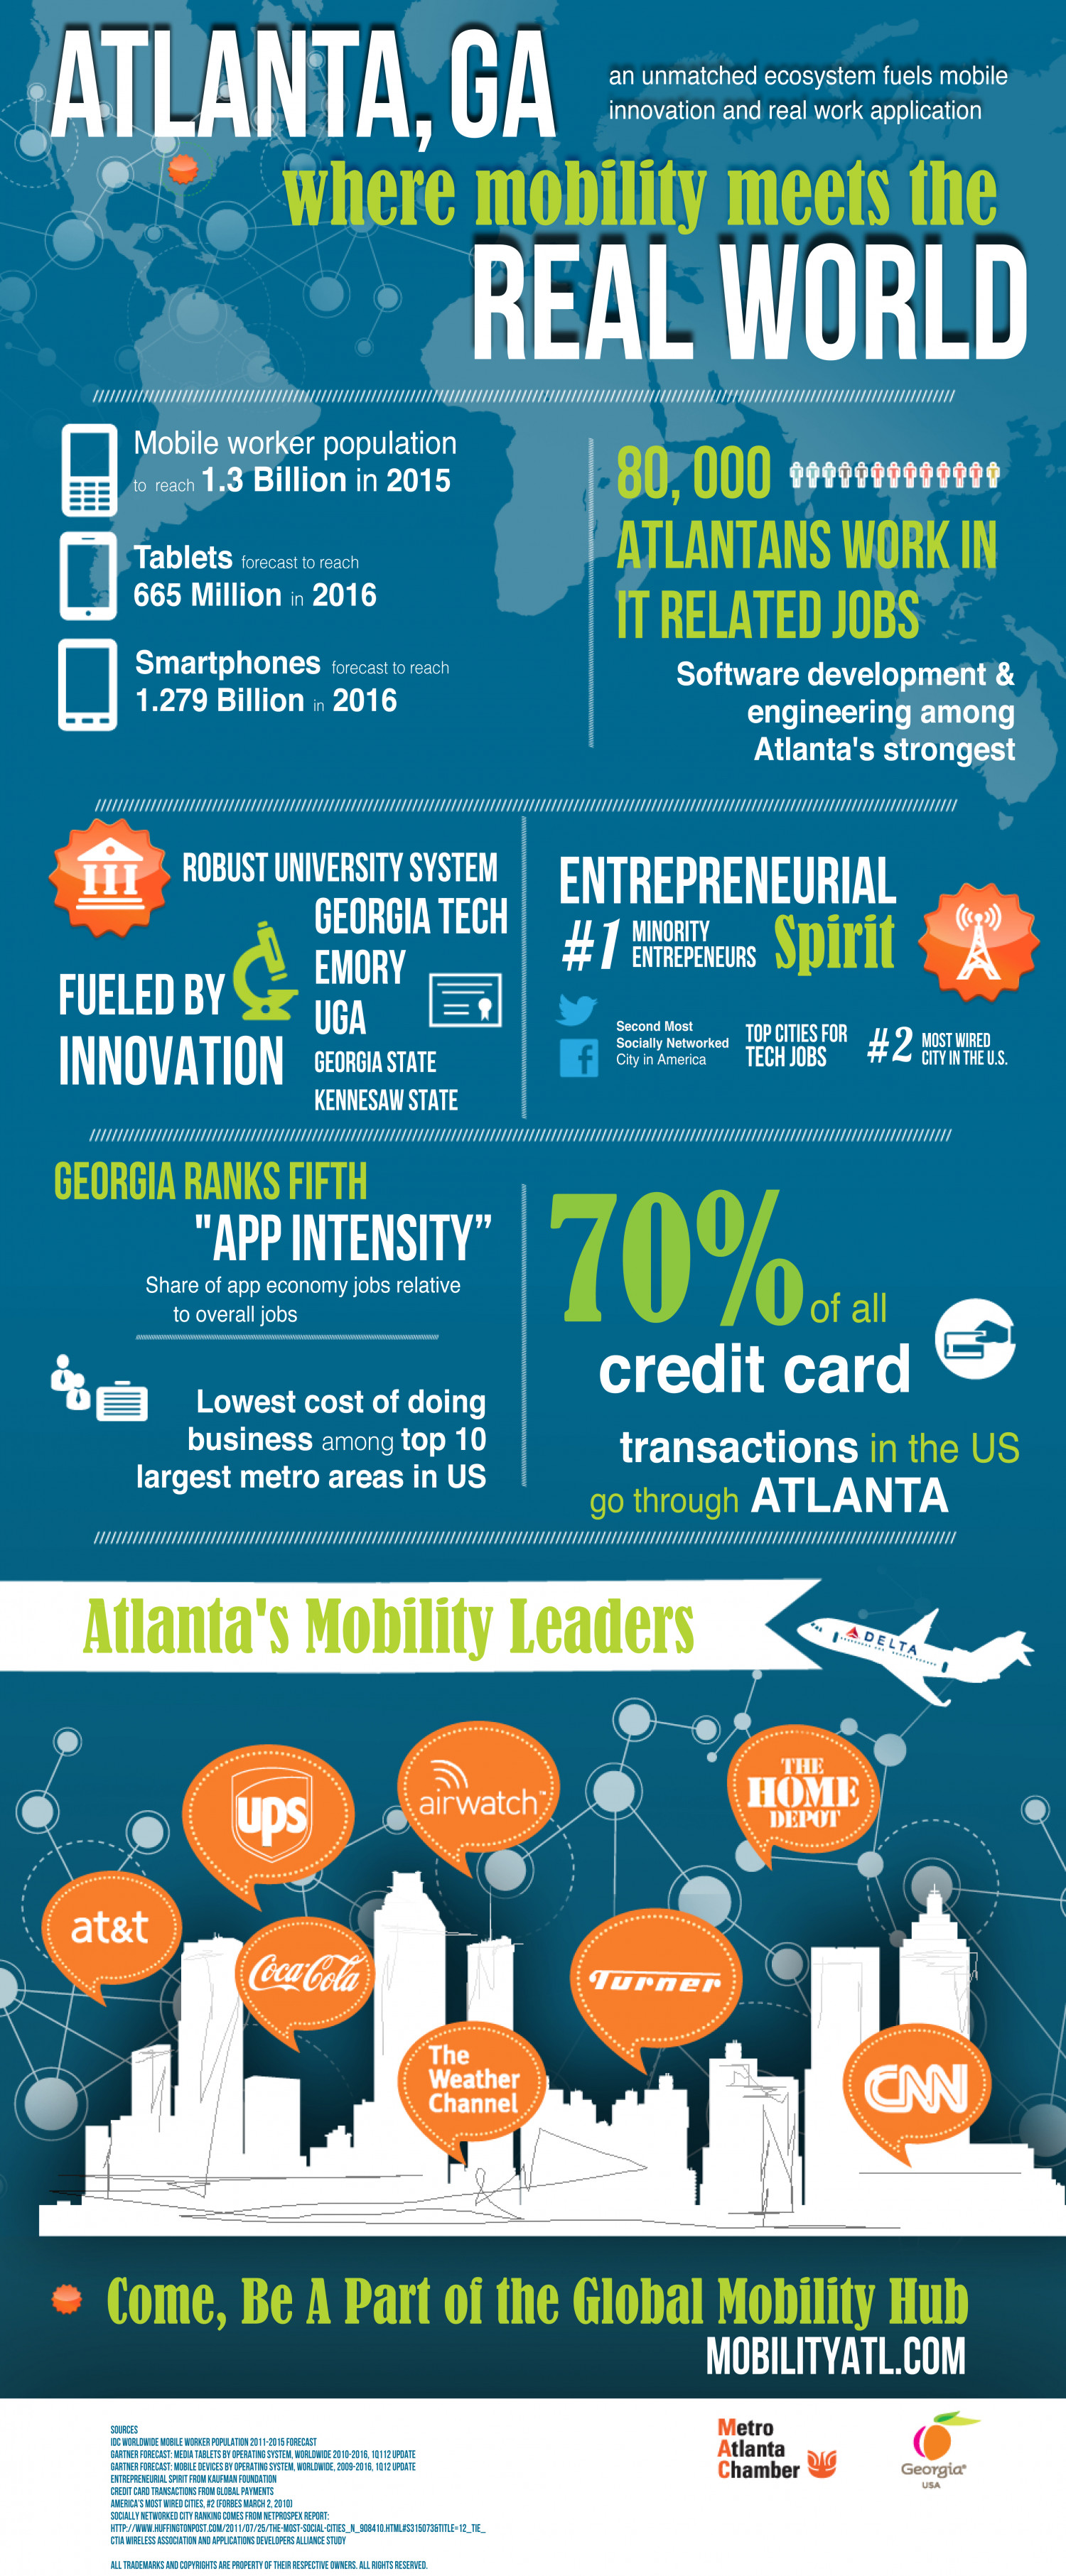 Atlanta, GA: Where Mobility Meets the Real World Infographic